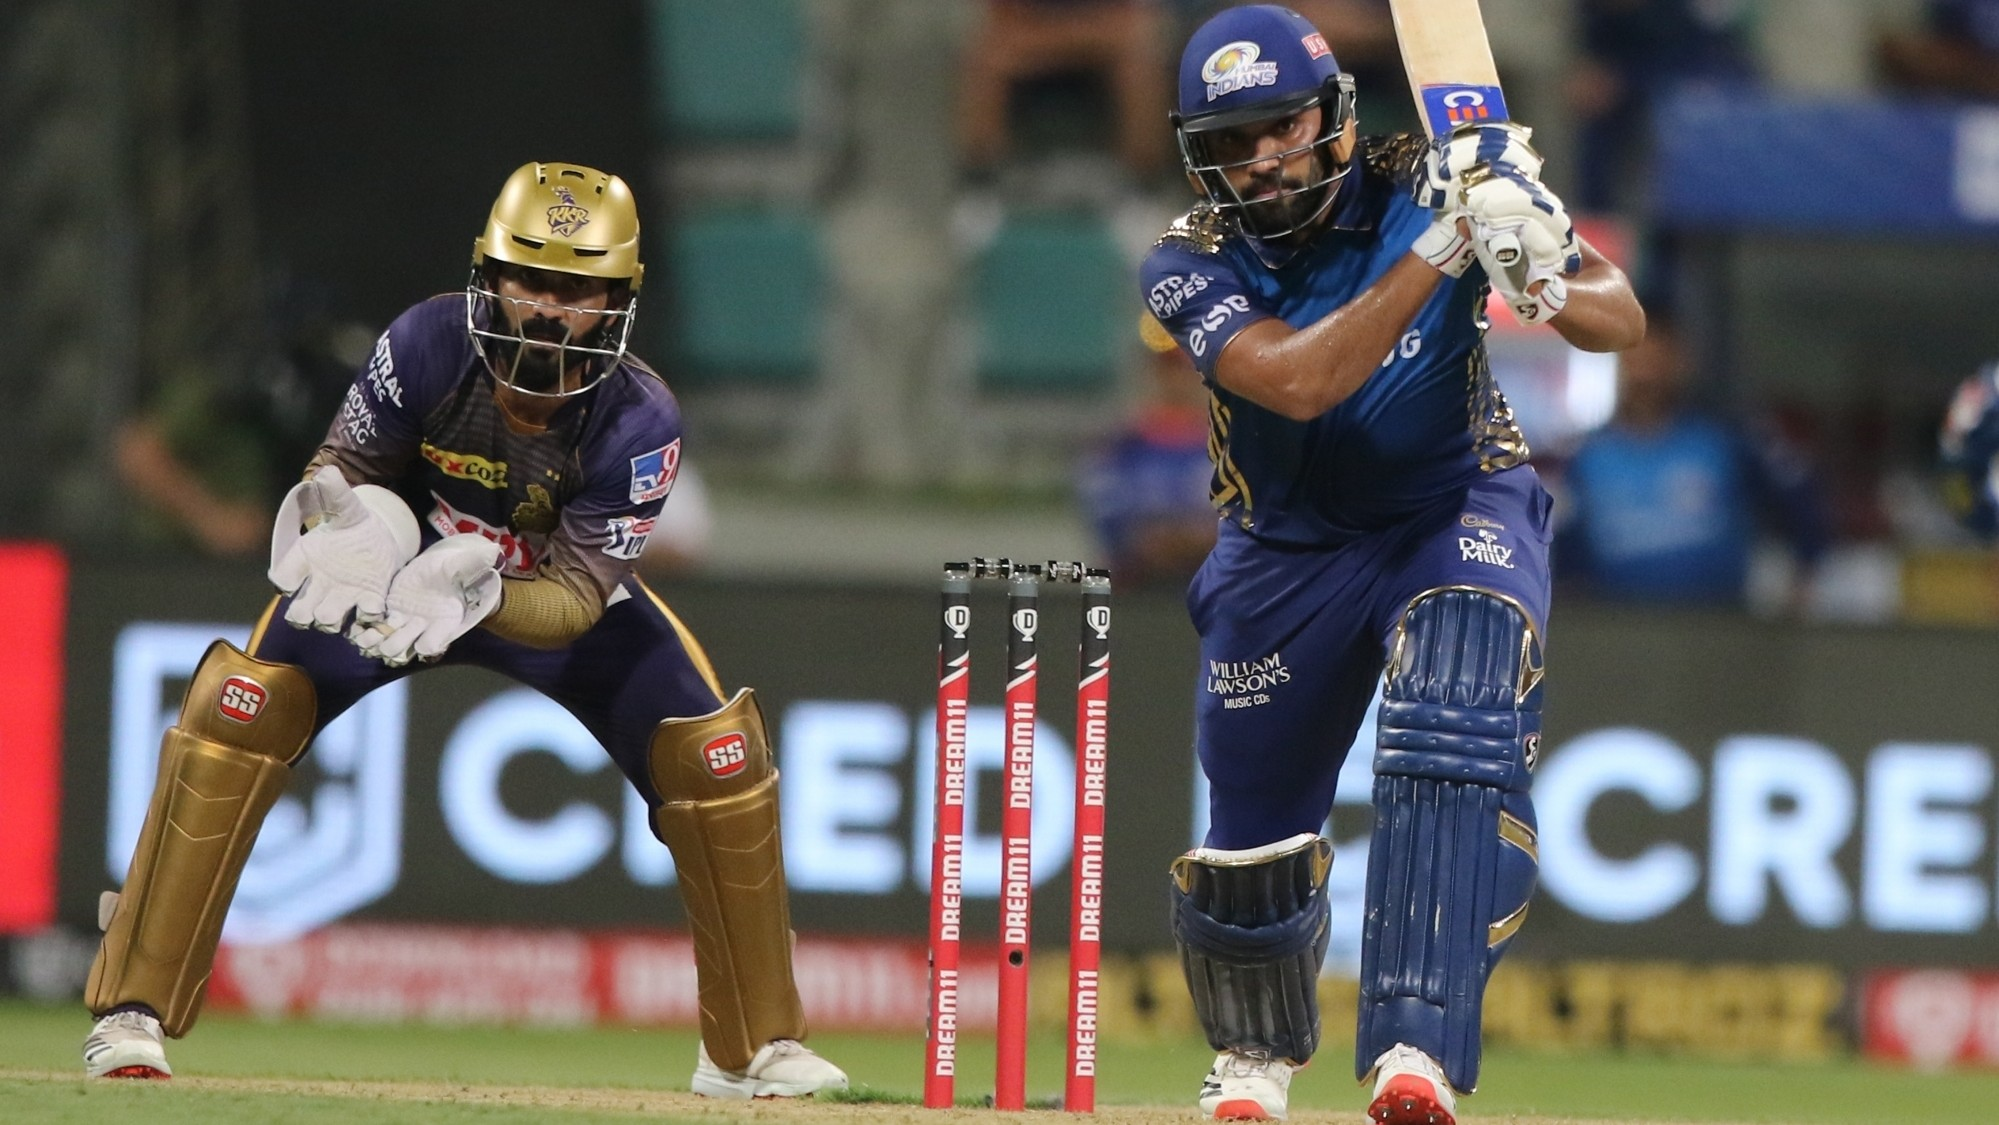 IPL 2020: 'Not easy to play long innings in UAE conditions', says MI skipper Rohit Sharma